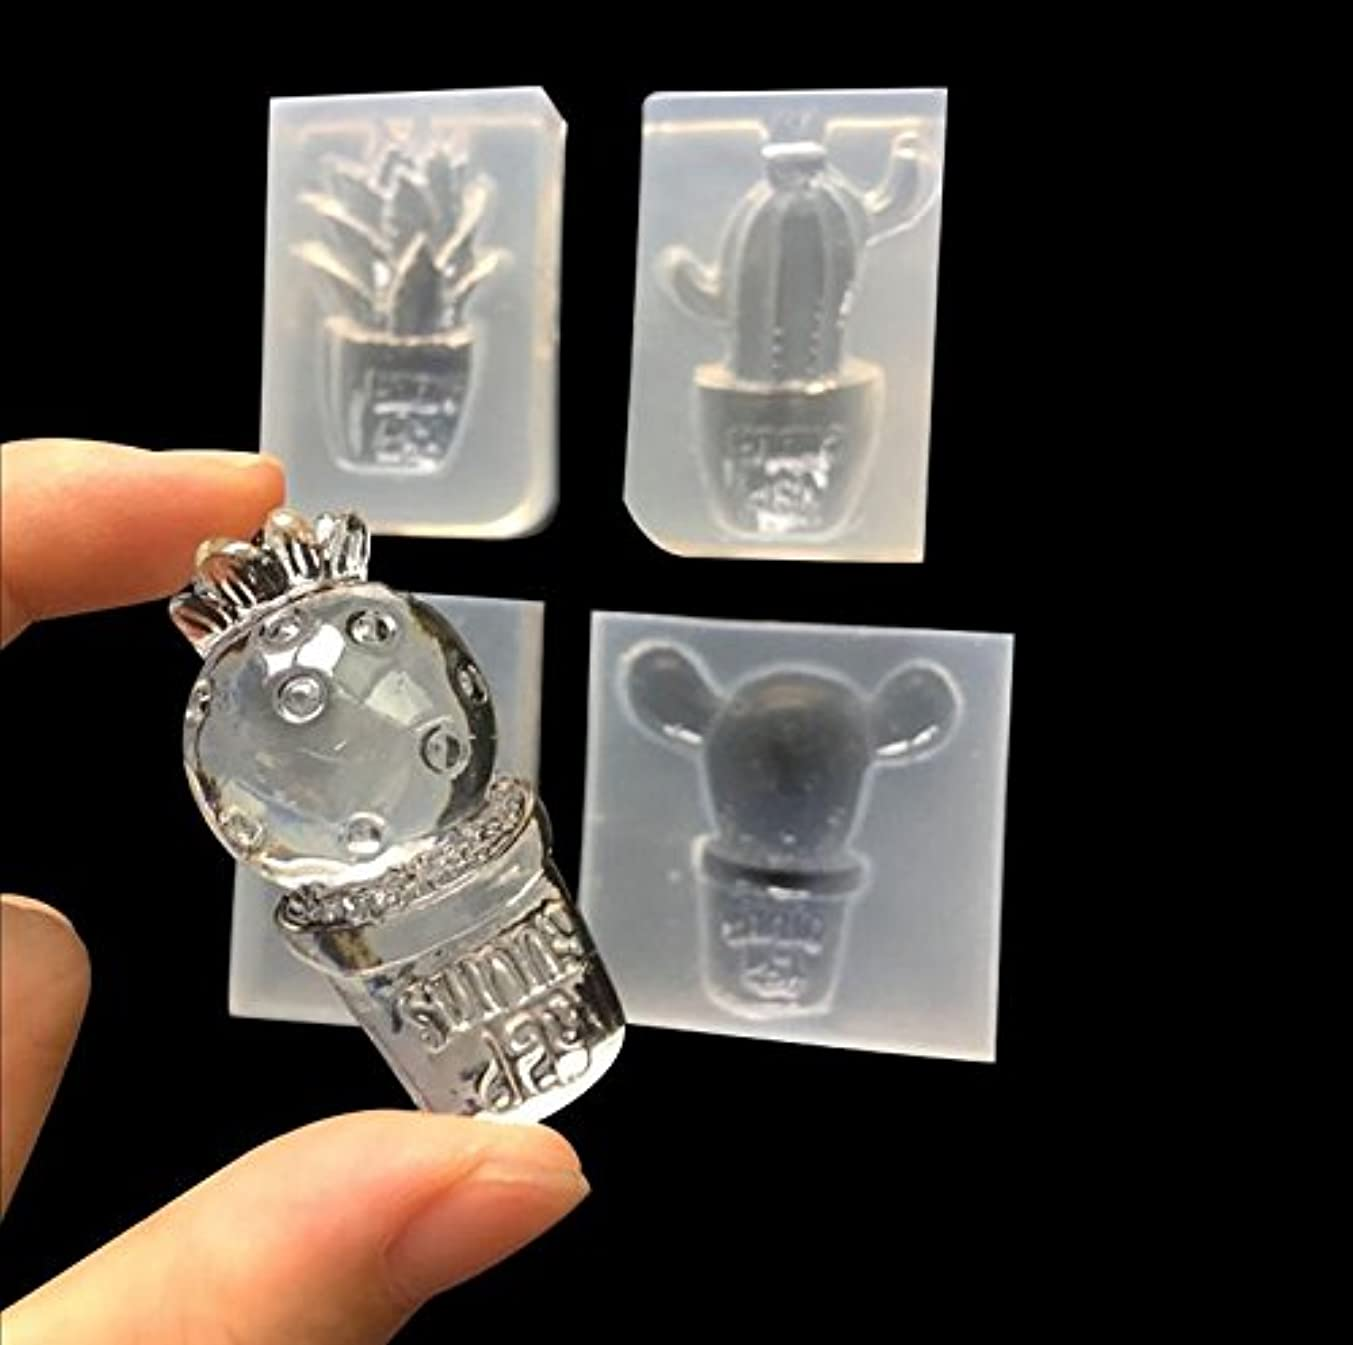 Welcome to Joyful Home 4pcs/Set Cactus Silicone Mould DIY Resin Decorative Craft Jewelry Making Mold epoxy Resin molds